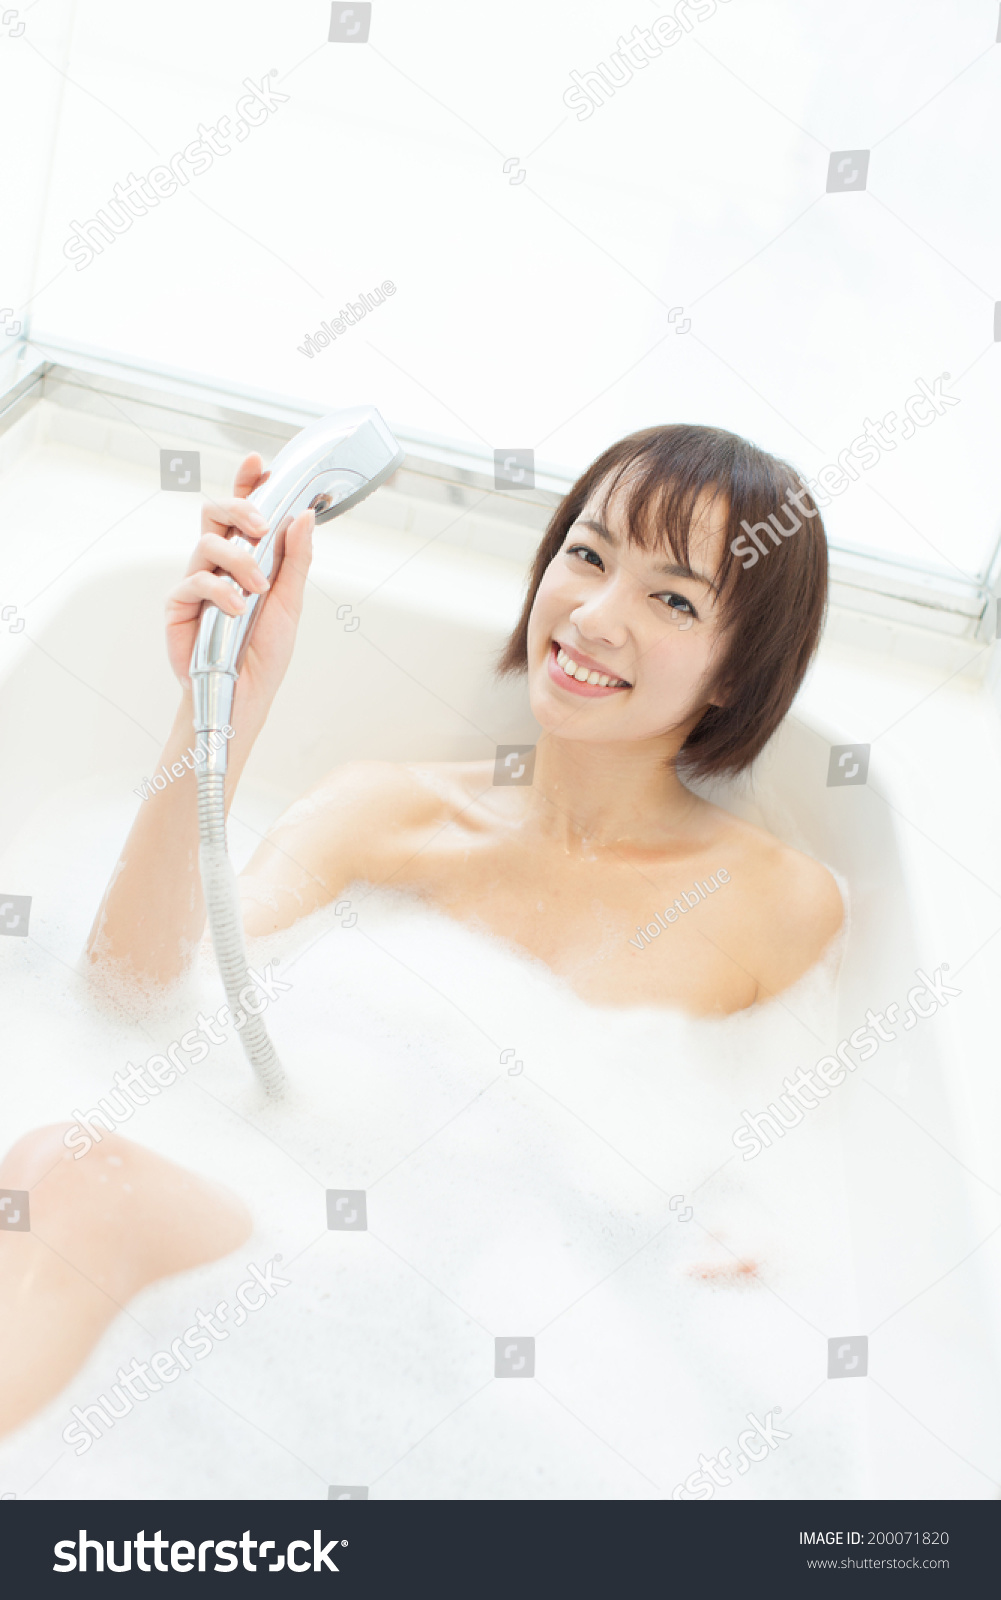 Young Woman Taking Shower Bath Stock Photo (Download Now) 200071820 ...